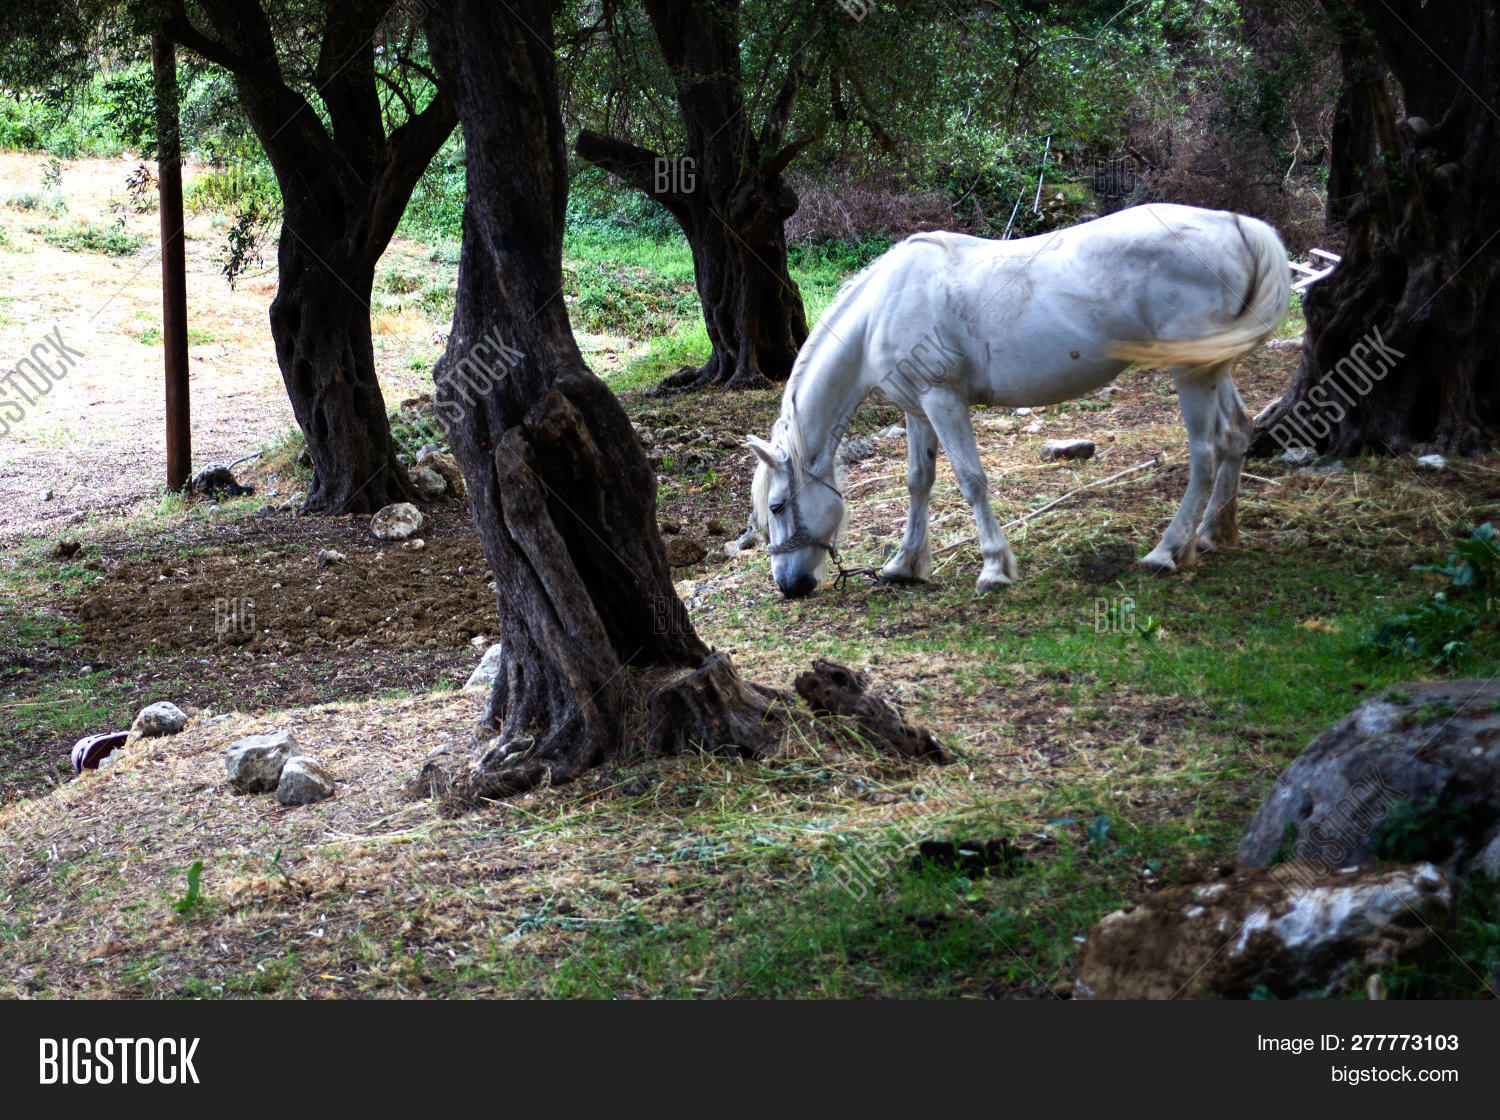 agriculture,animal,breed,bridle,country,countryside,dark,dirt,domestic,dry,eating,environment,equine,farm,field,forest,grass,grazing,green,horse,land,landscape,life,mammal,mane,mare,nature,one,outdoor,pasture,pony,ranch,rural,sand,soil,stallion,standing,steed,stud,surrounding,tail,territory,tree,trunks,under,white,wood